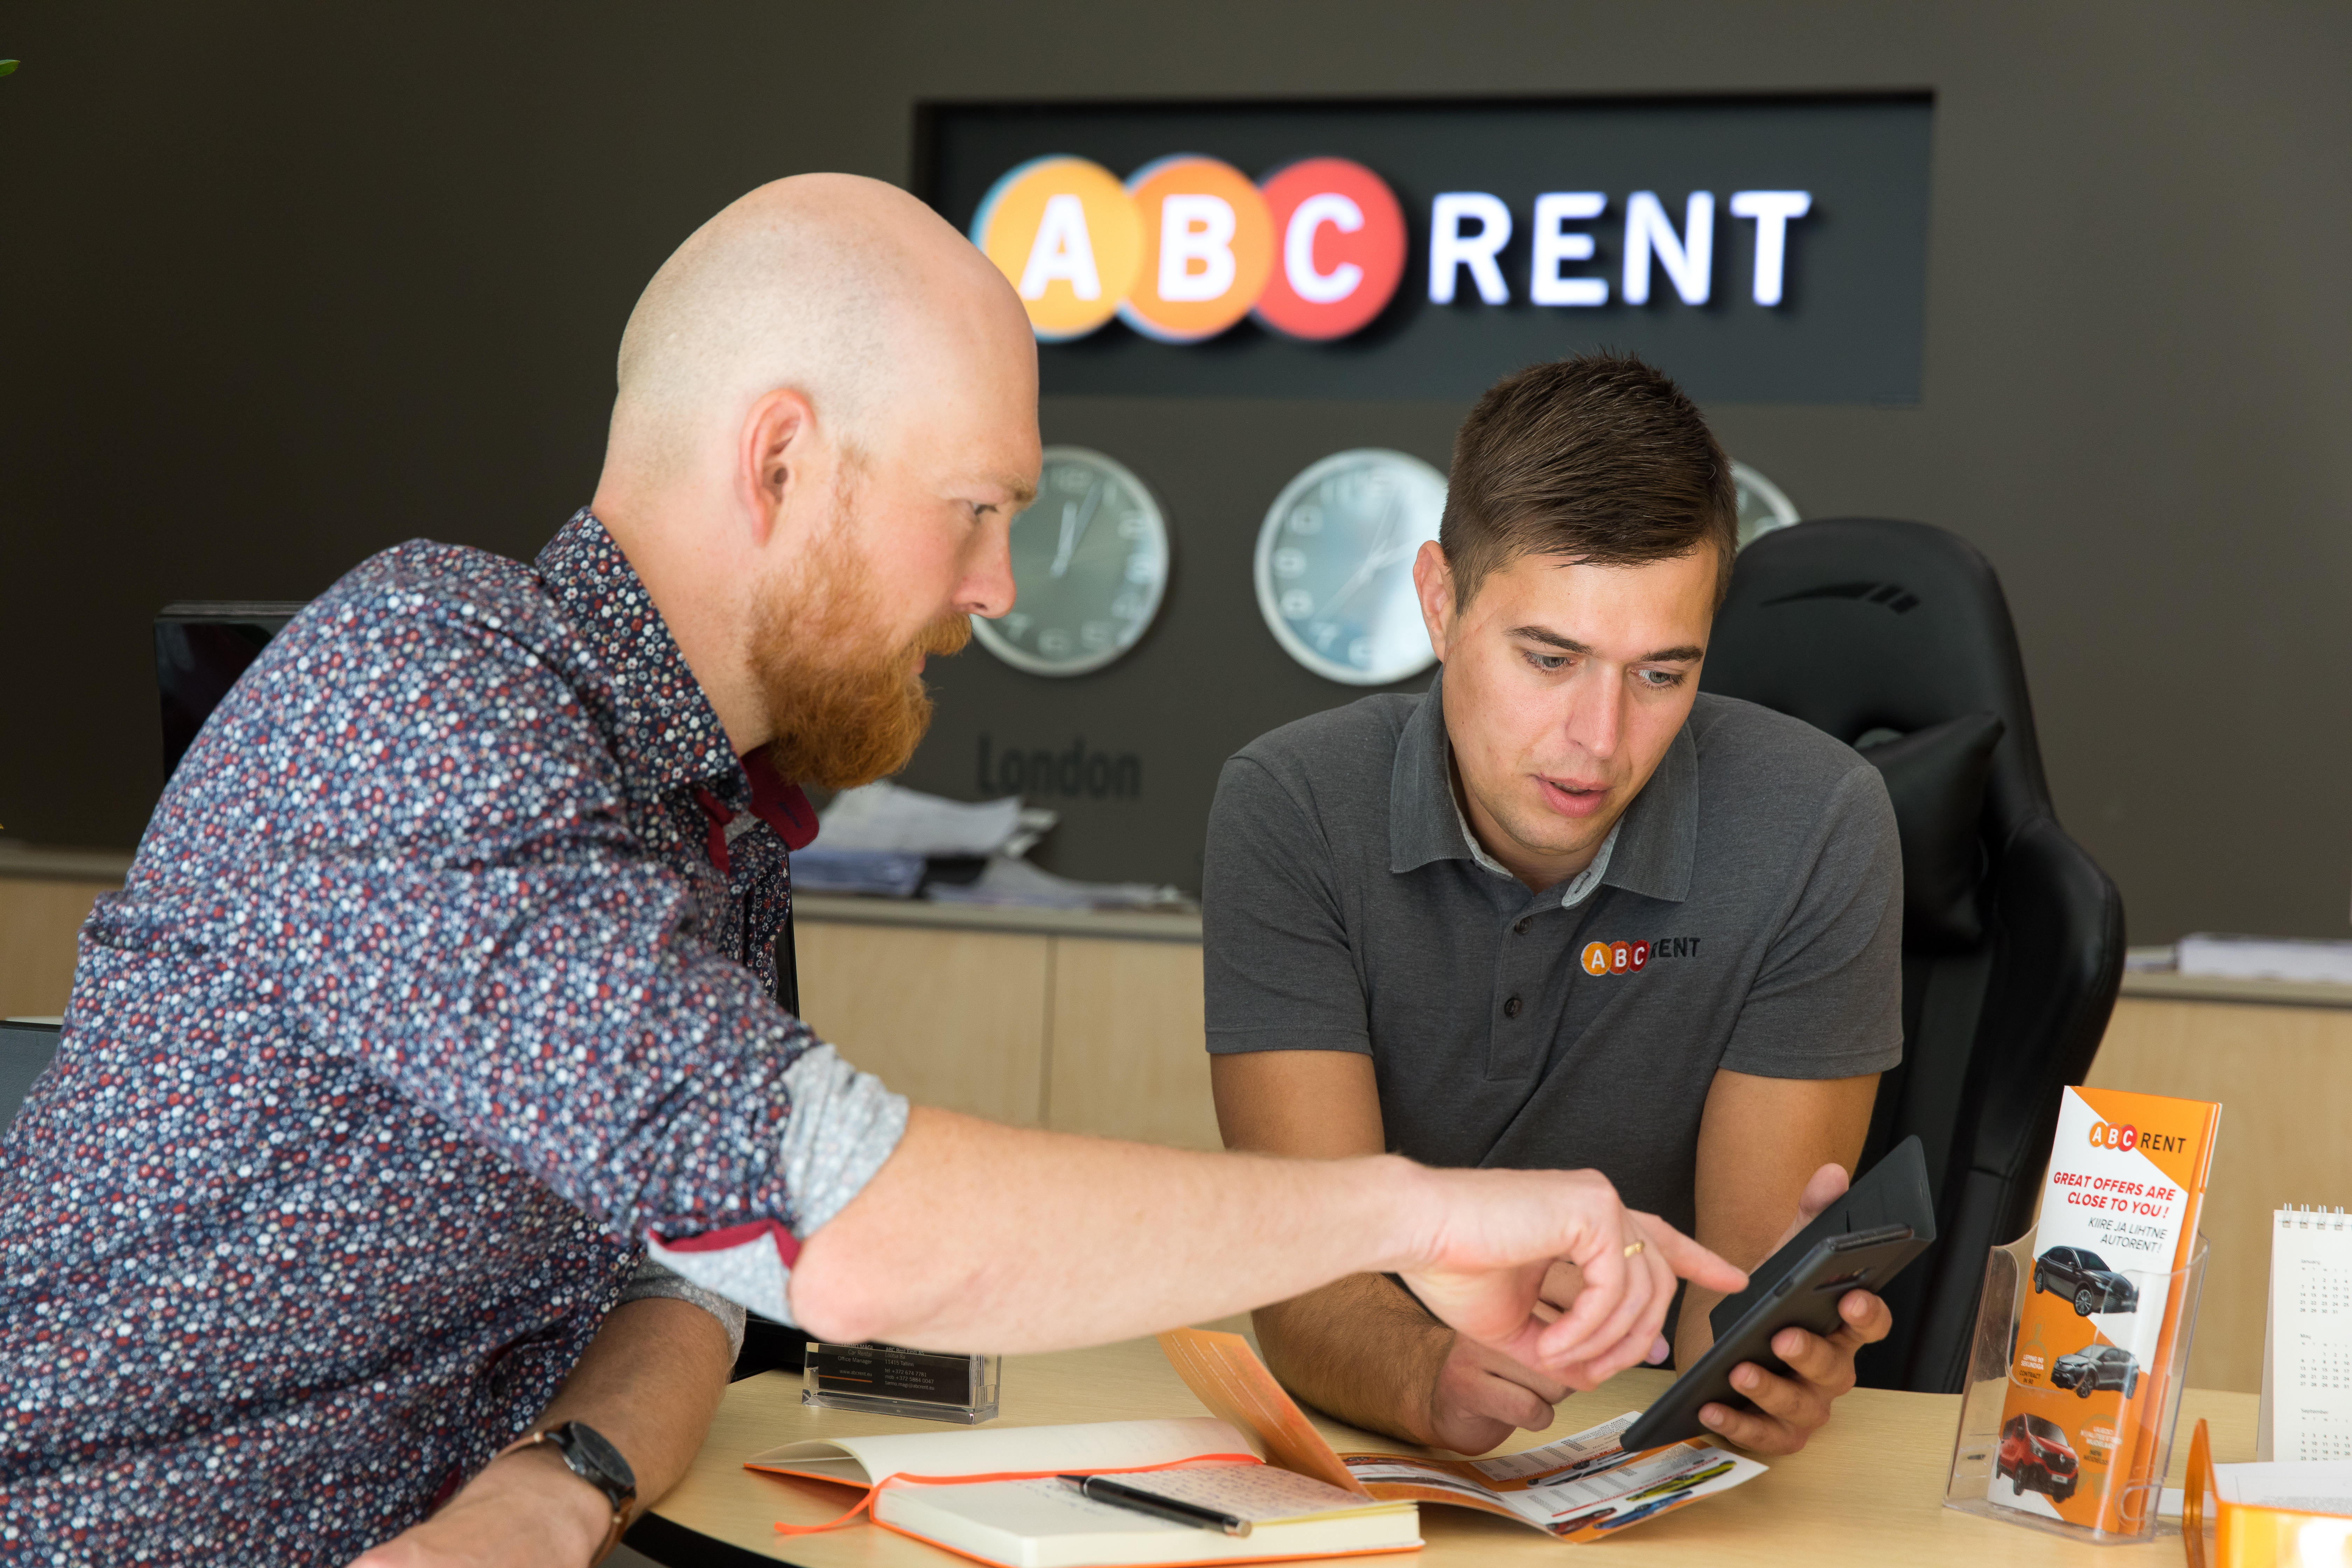 ABC Rent_Fleet Complete_ Two men looking at mobile app